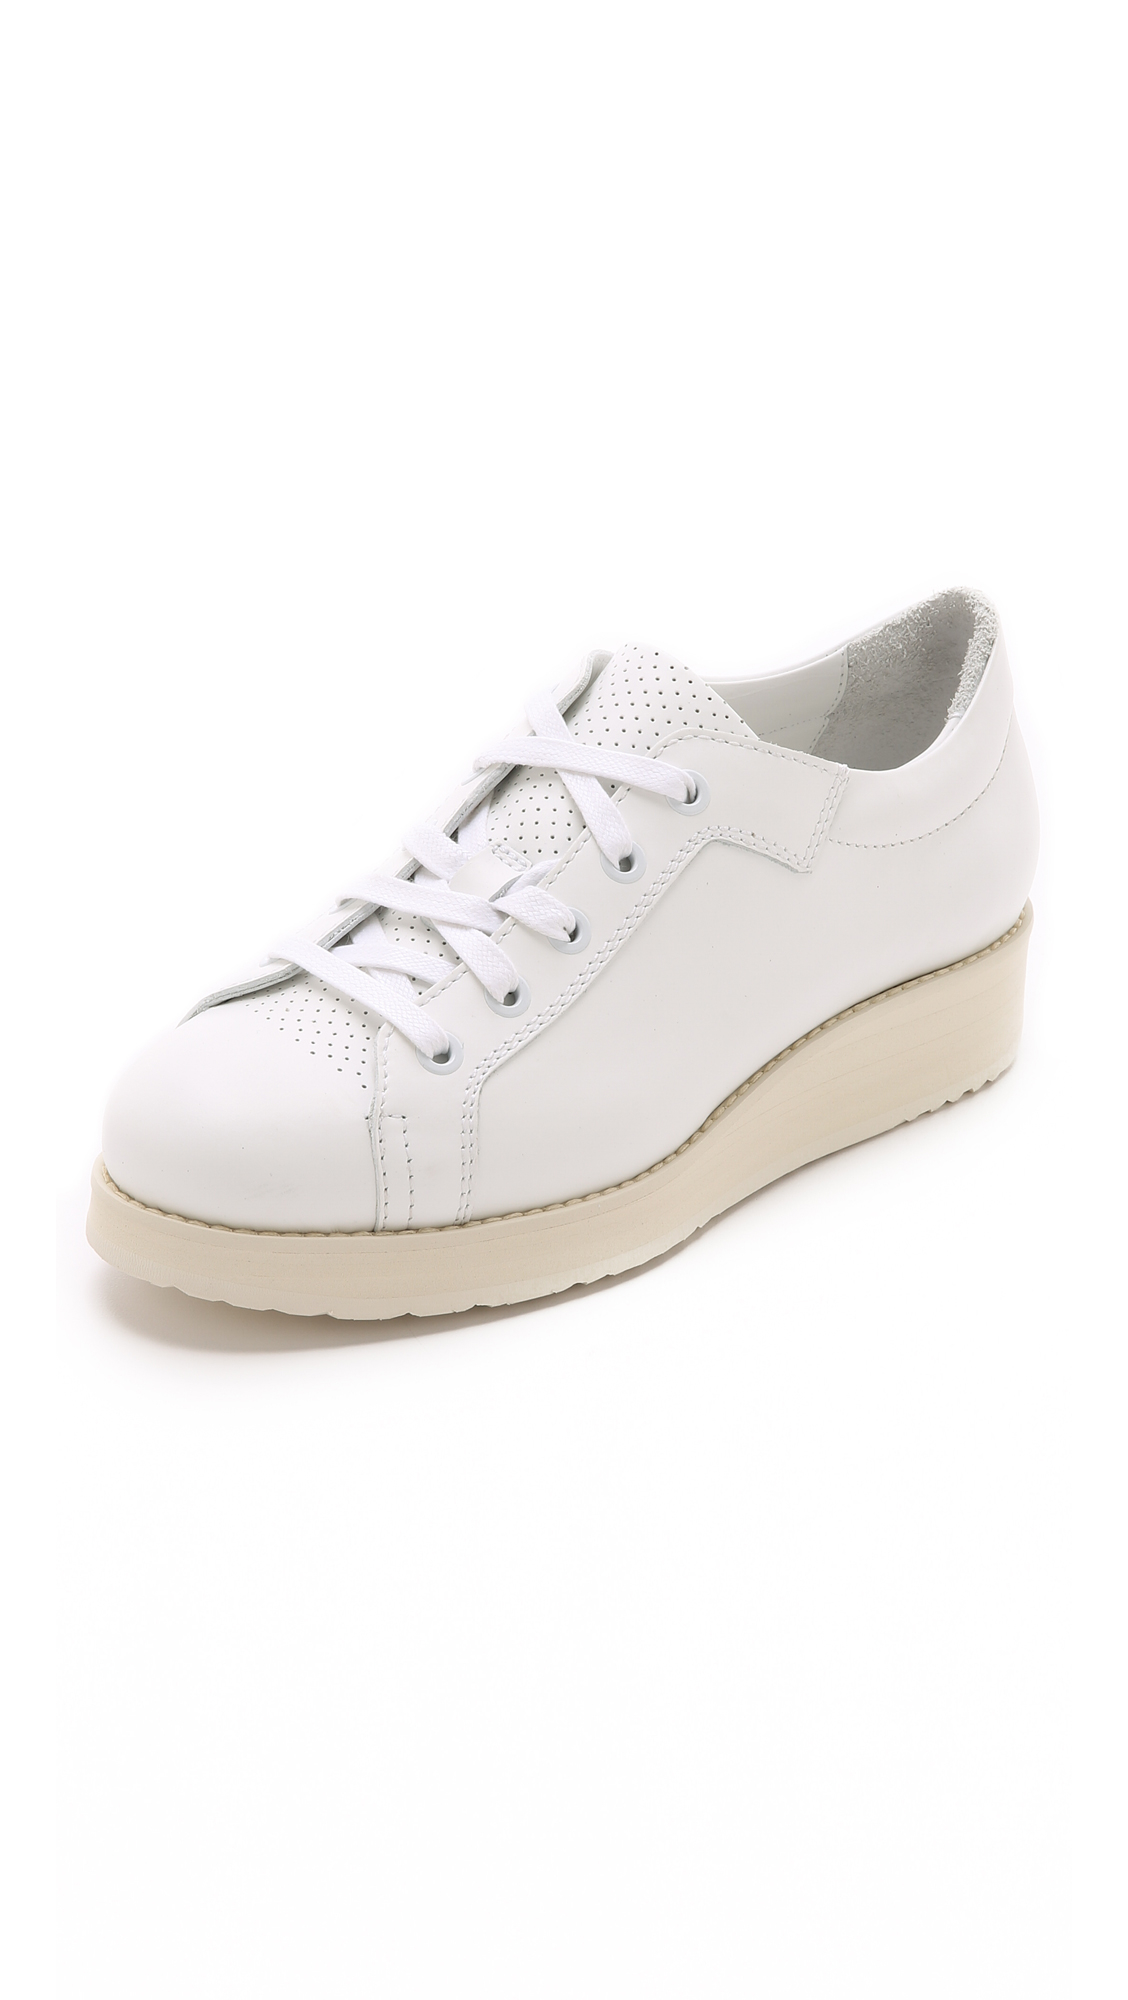 Acne Shoes White